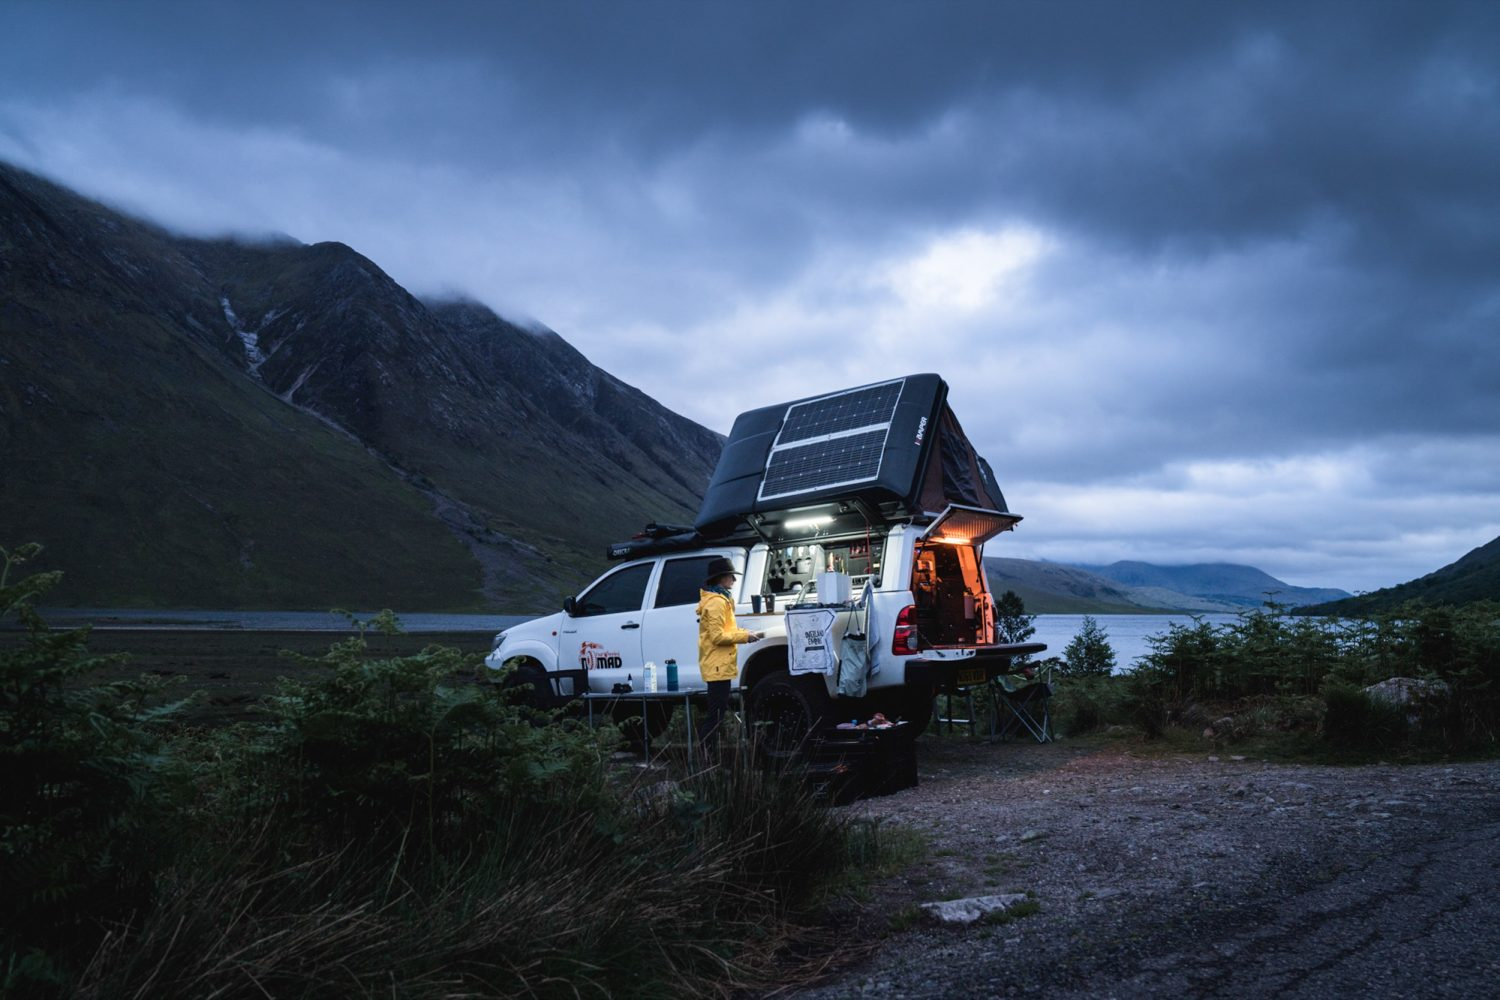 Building a Hilux to Travel From Norway to South Africa